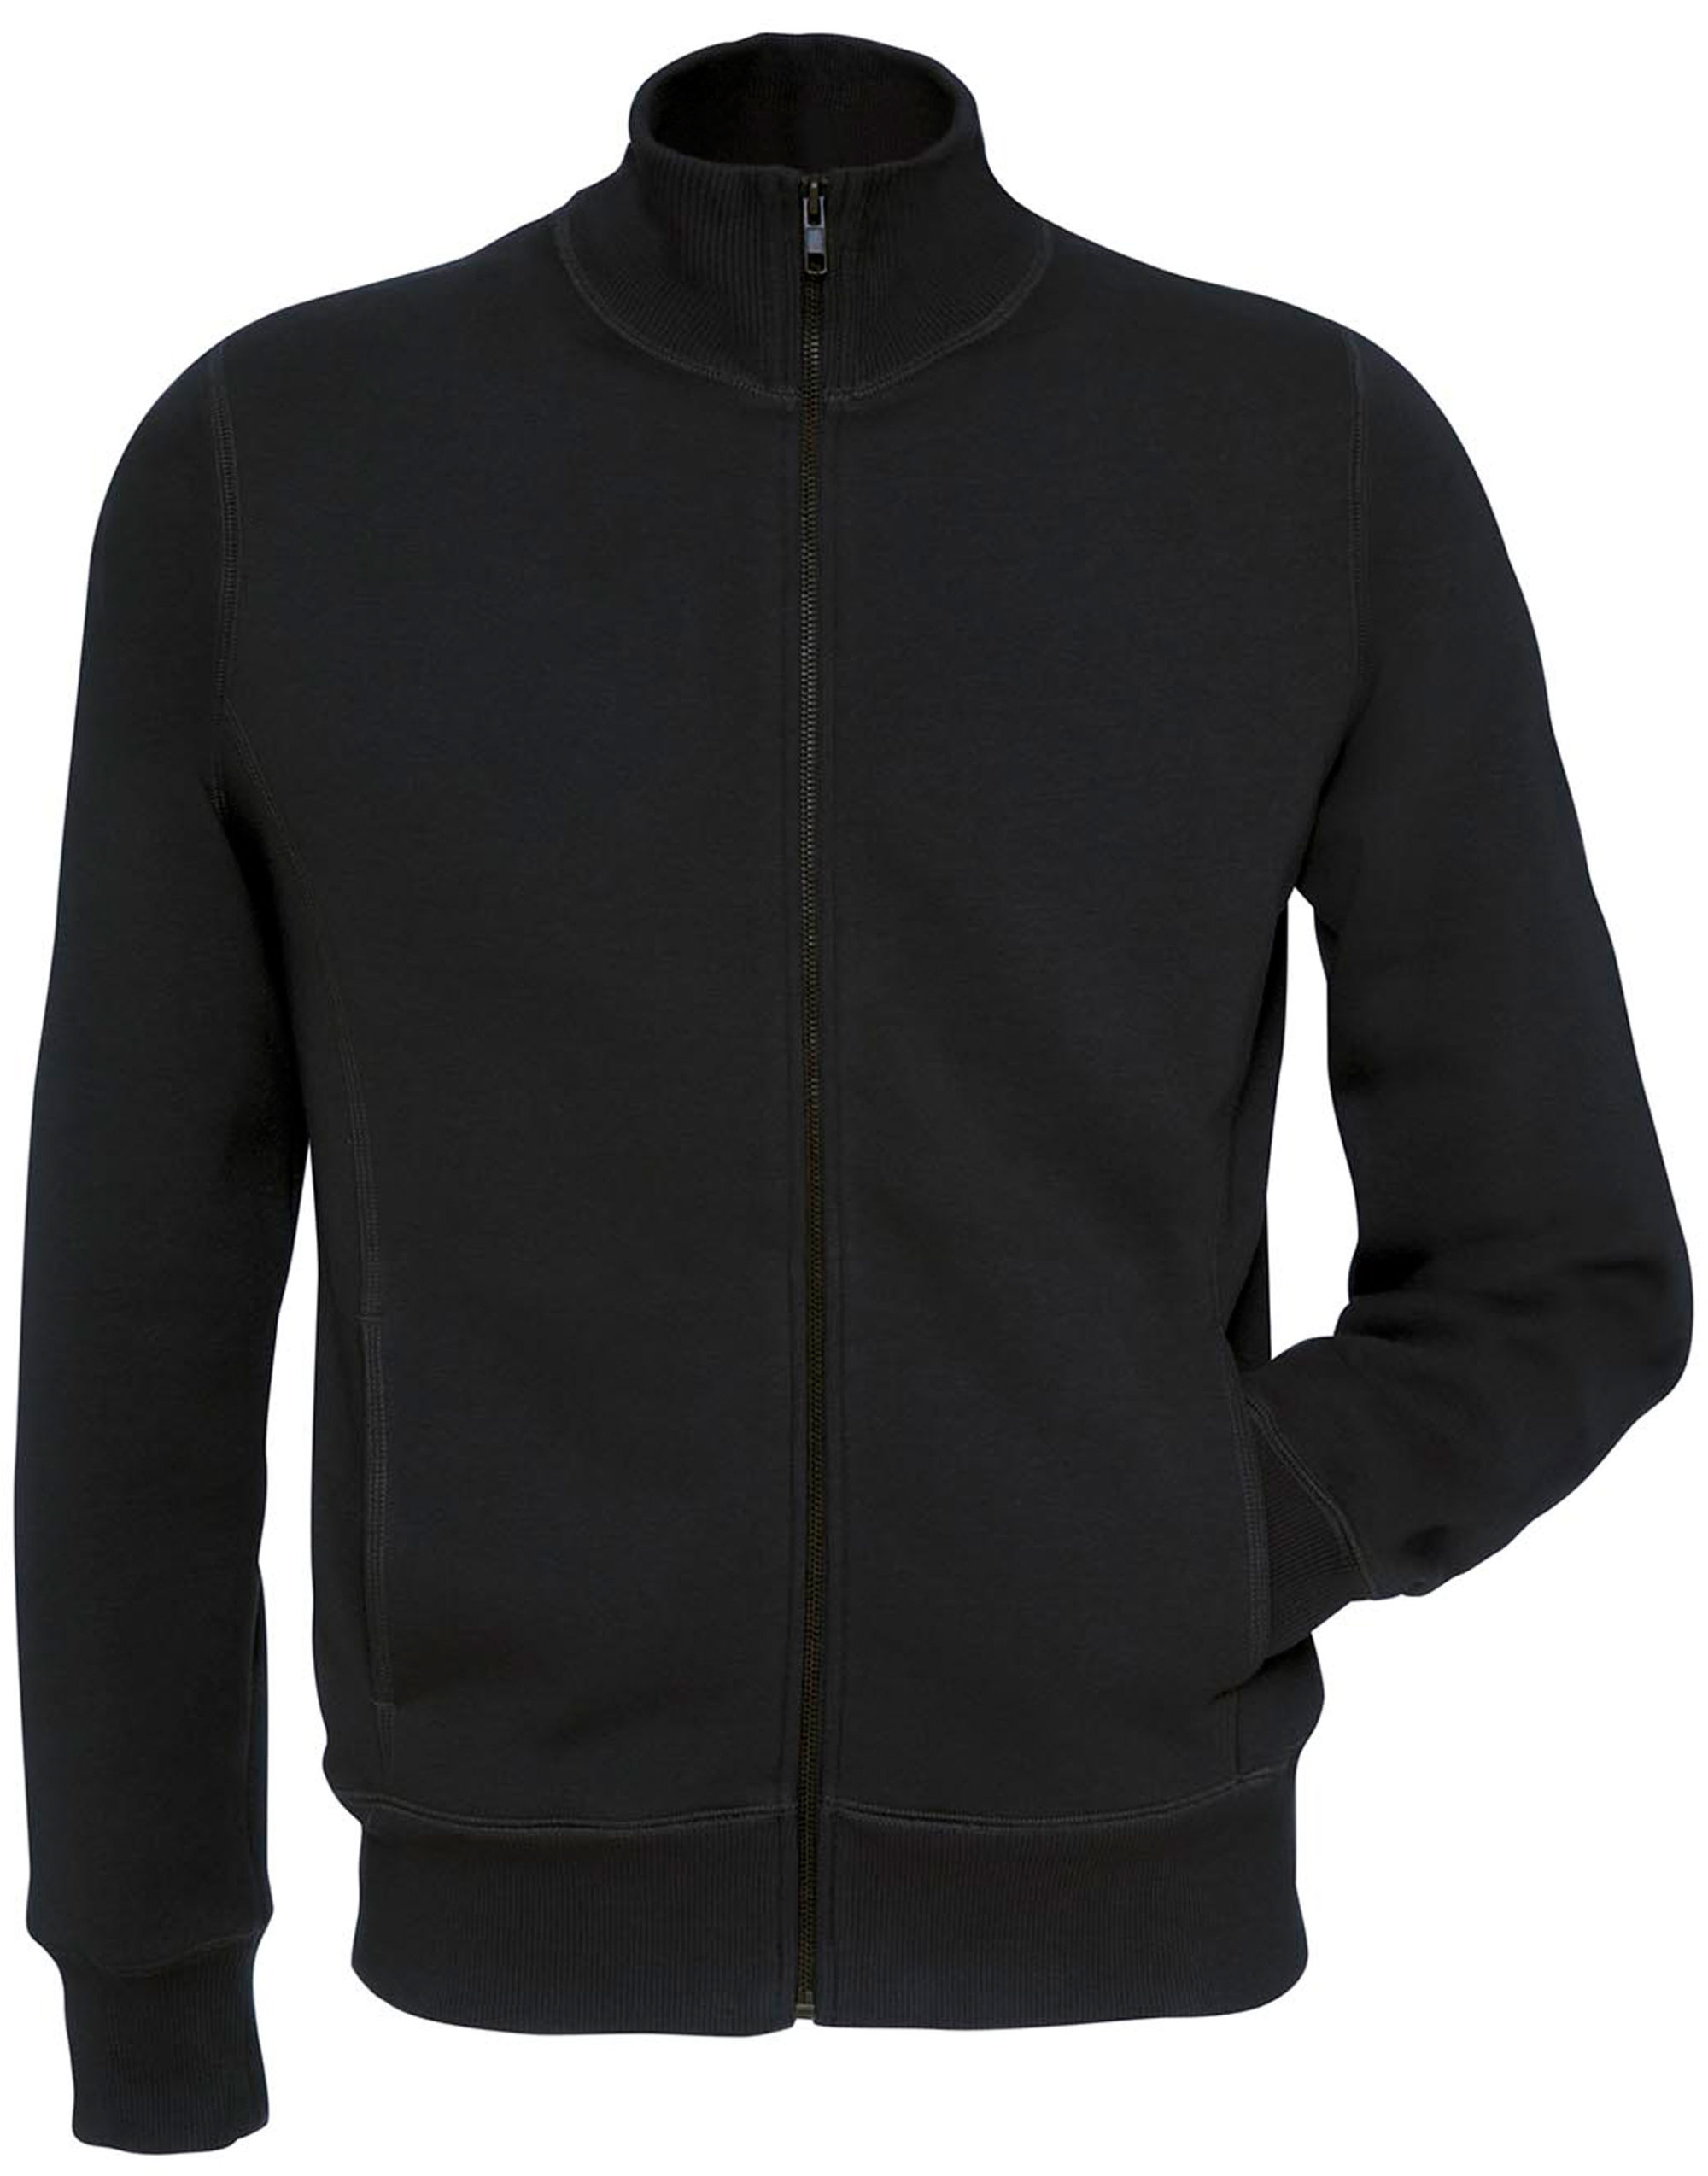 B&c Spider Men Full Zip Sweat